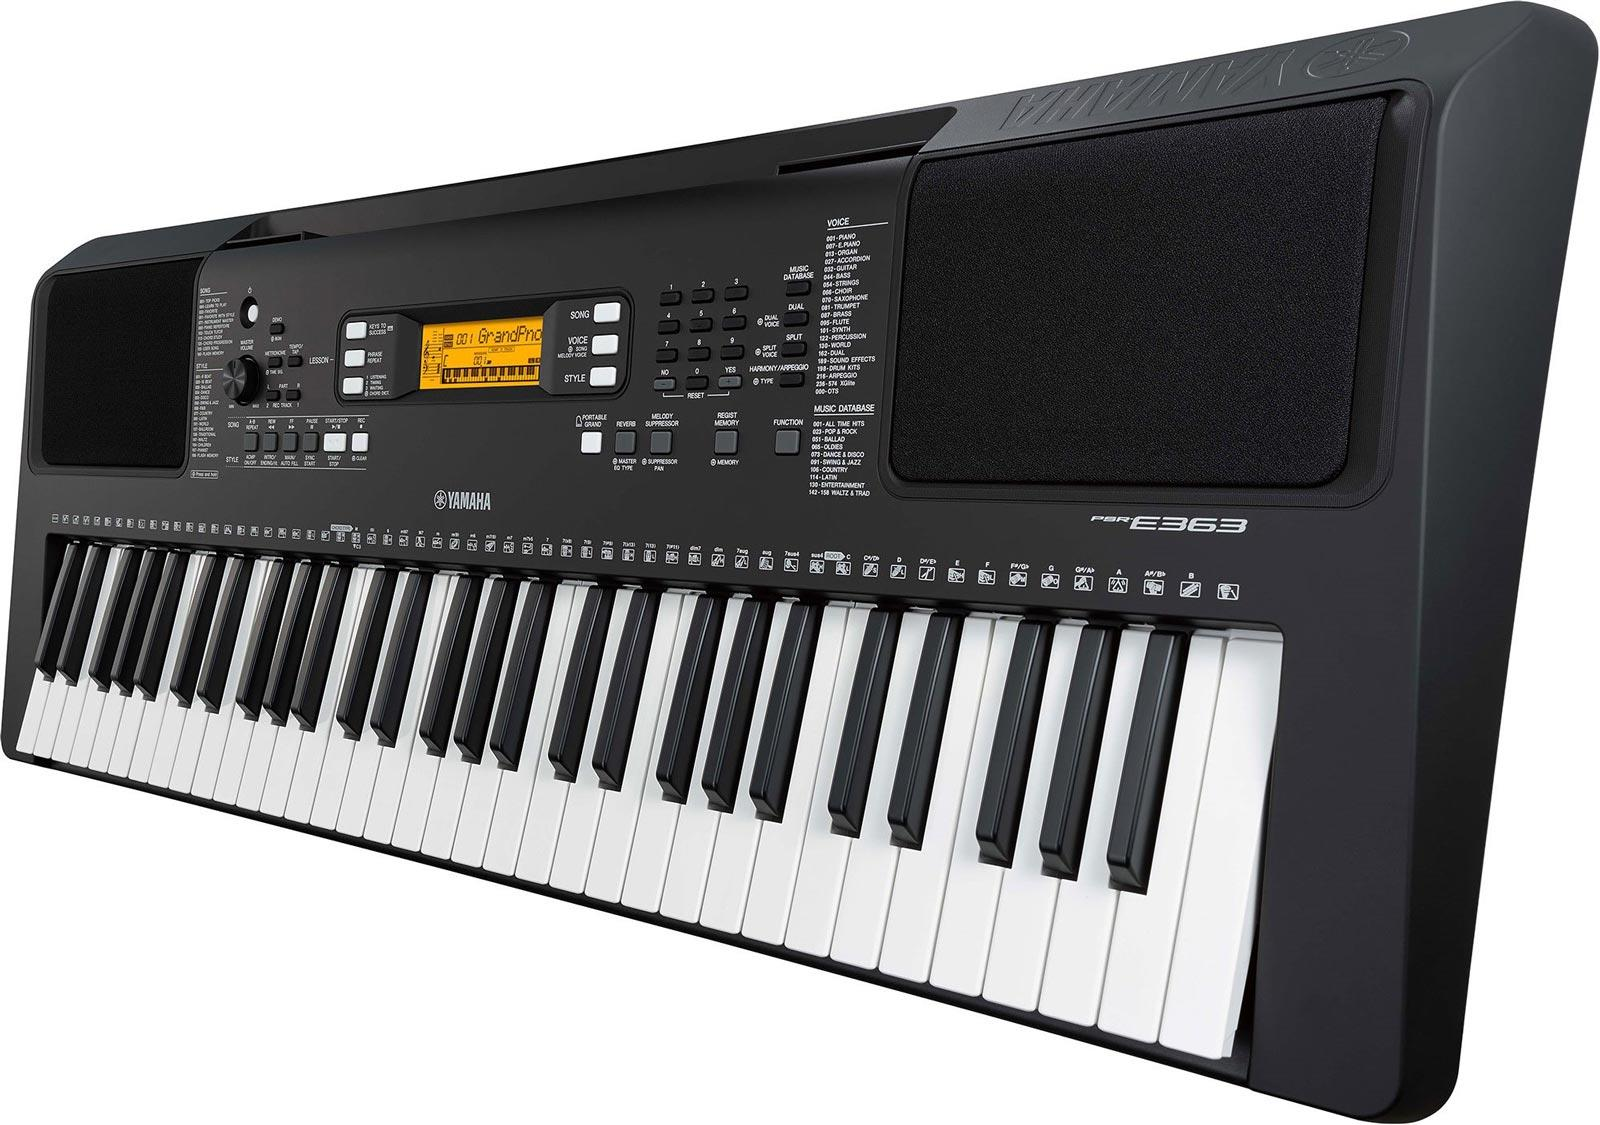 Yamaha psr e363 keymusic for Yamaha psr ew